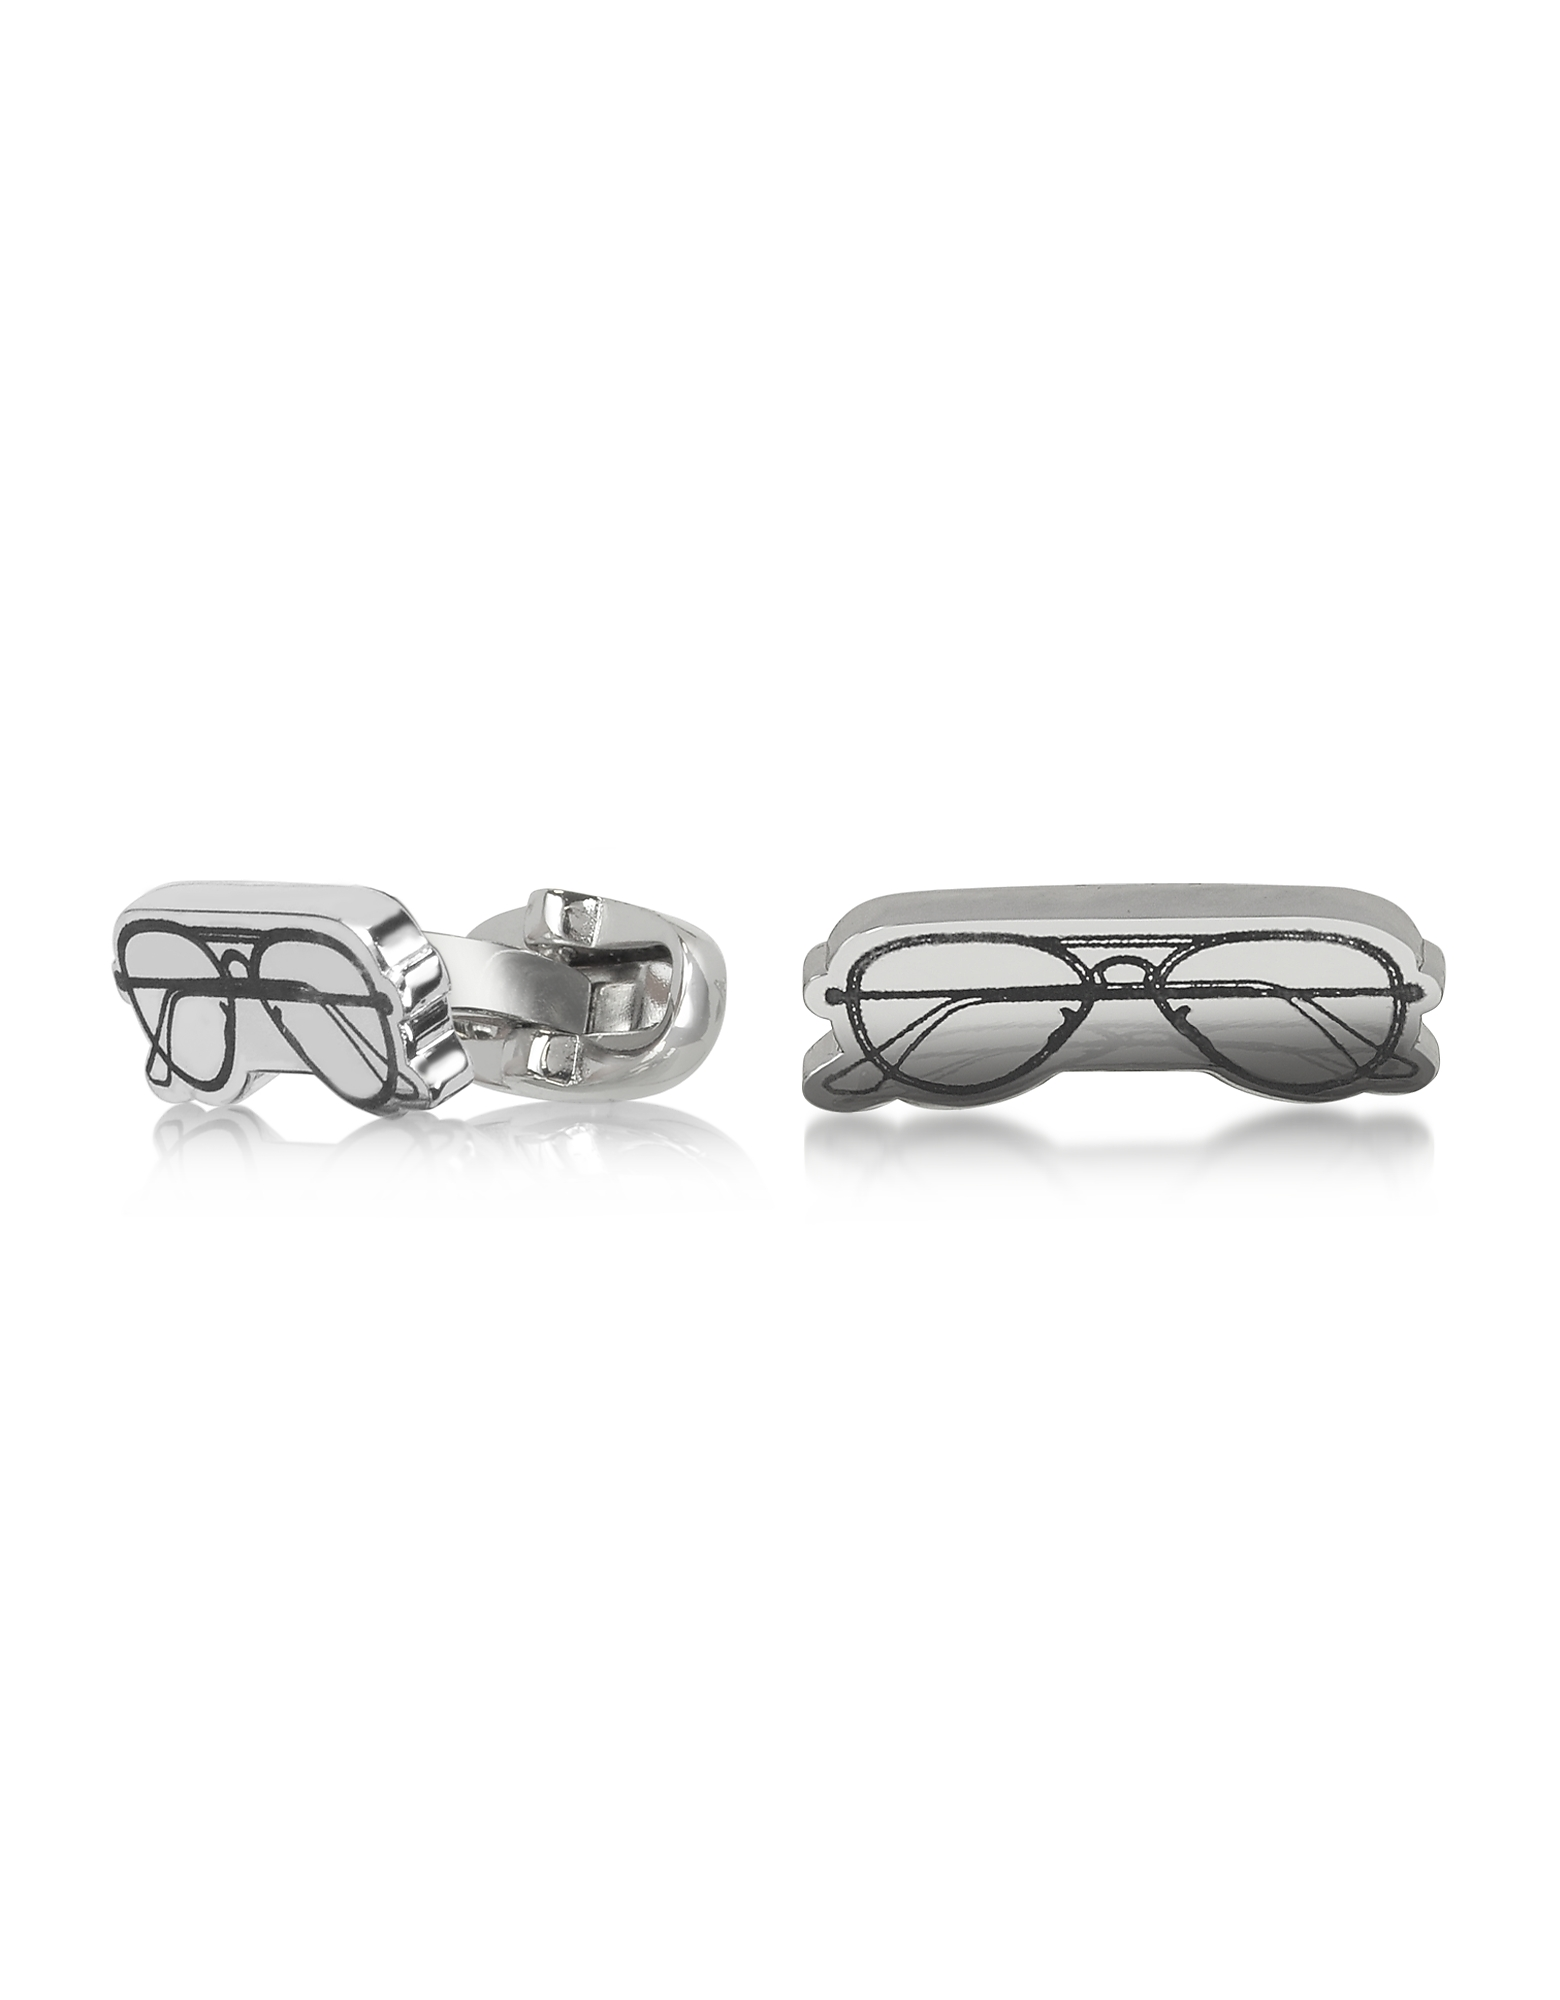 Paul Smith Cufflinks, Men's Sunglasses Drawing Cufflinks